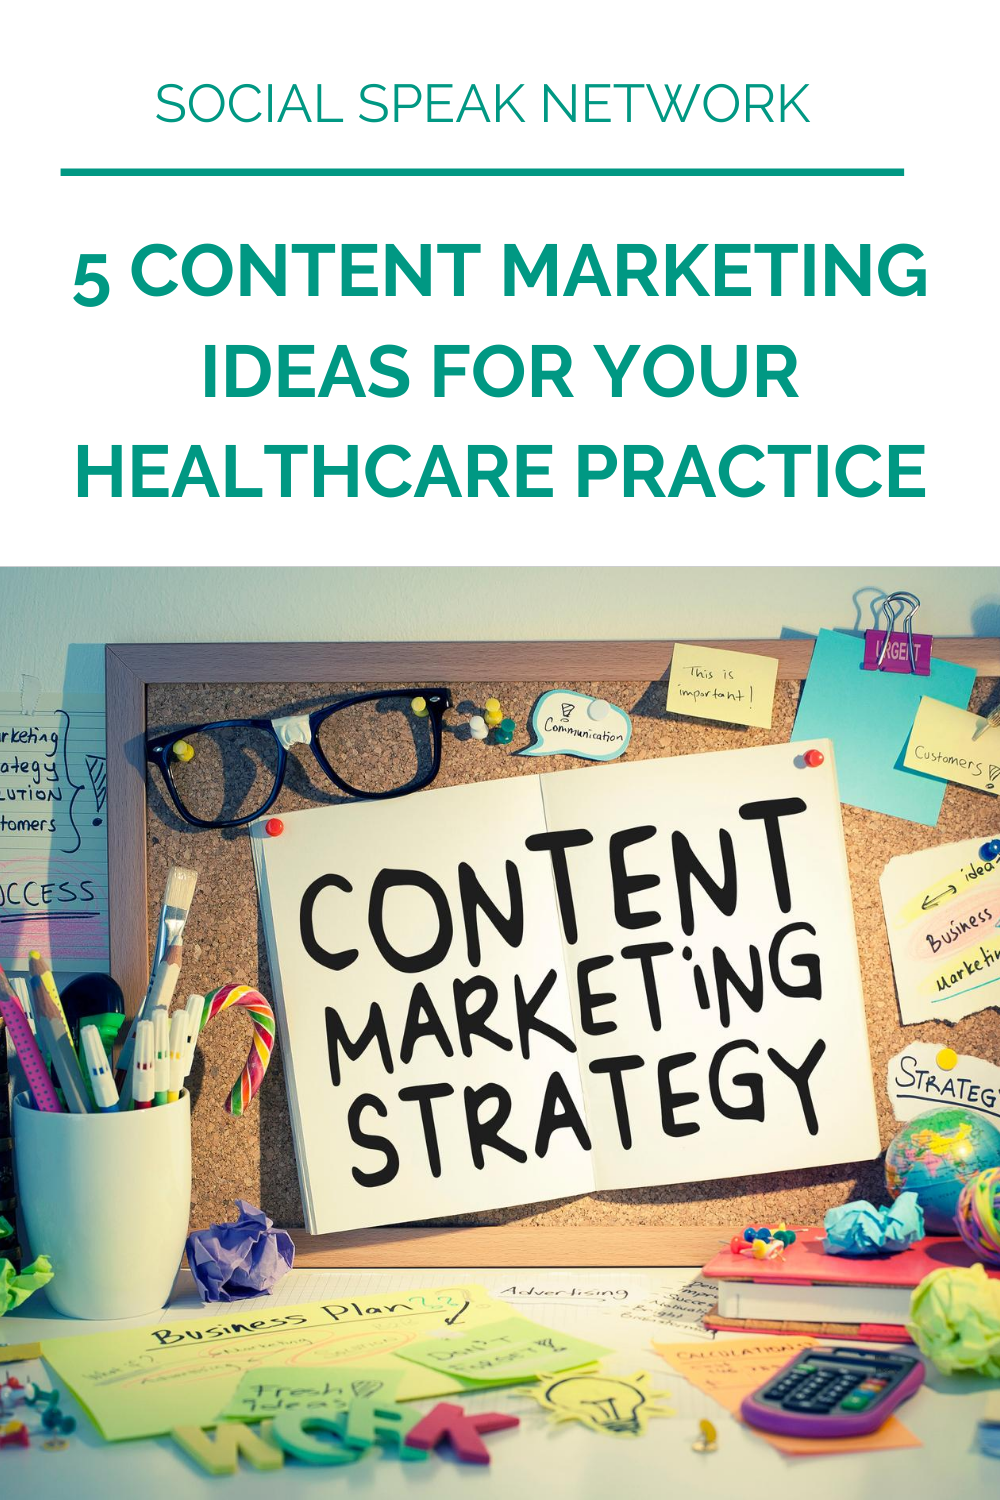 5 Content Marketing Ideas for Your Healthcare Practice